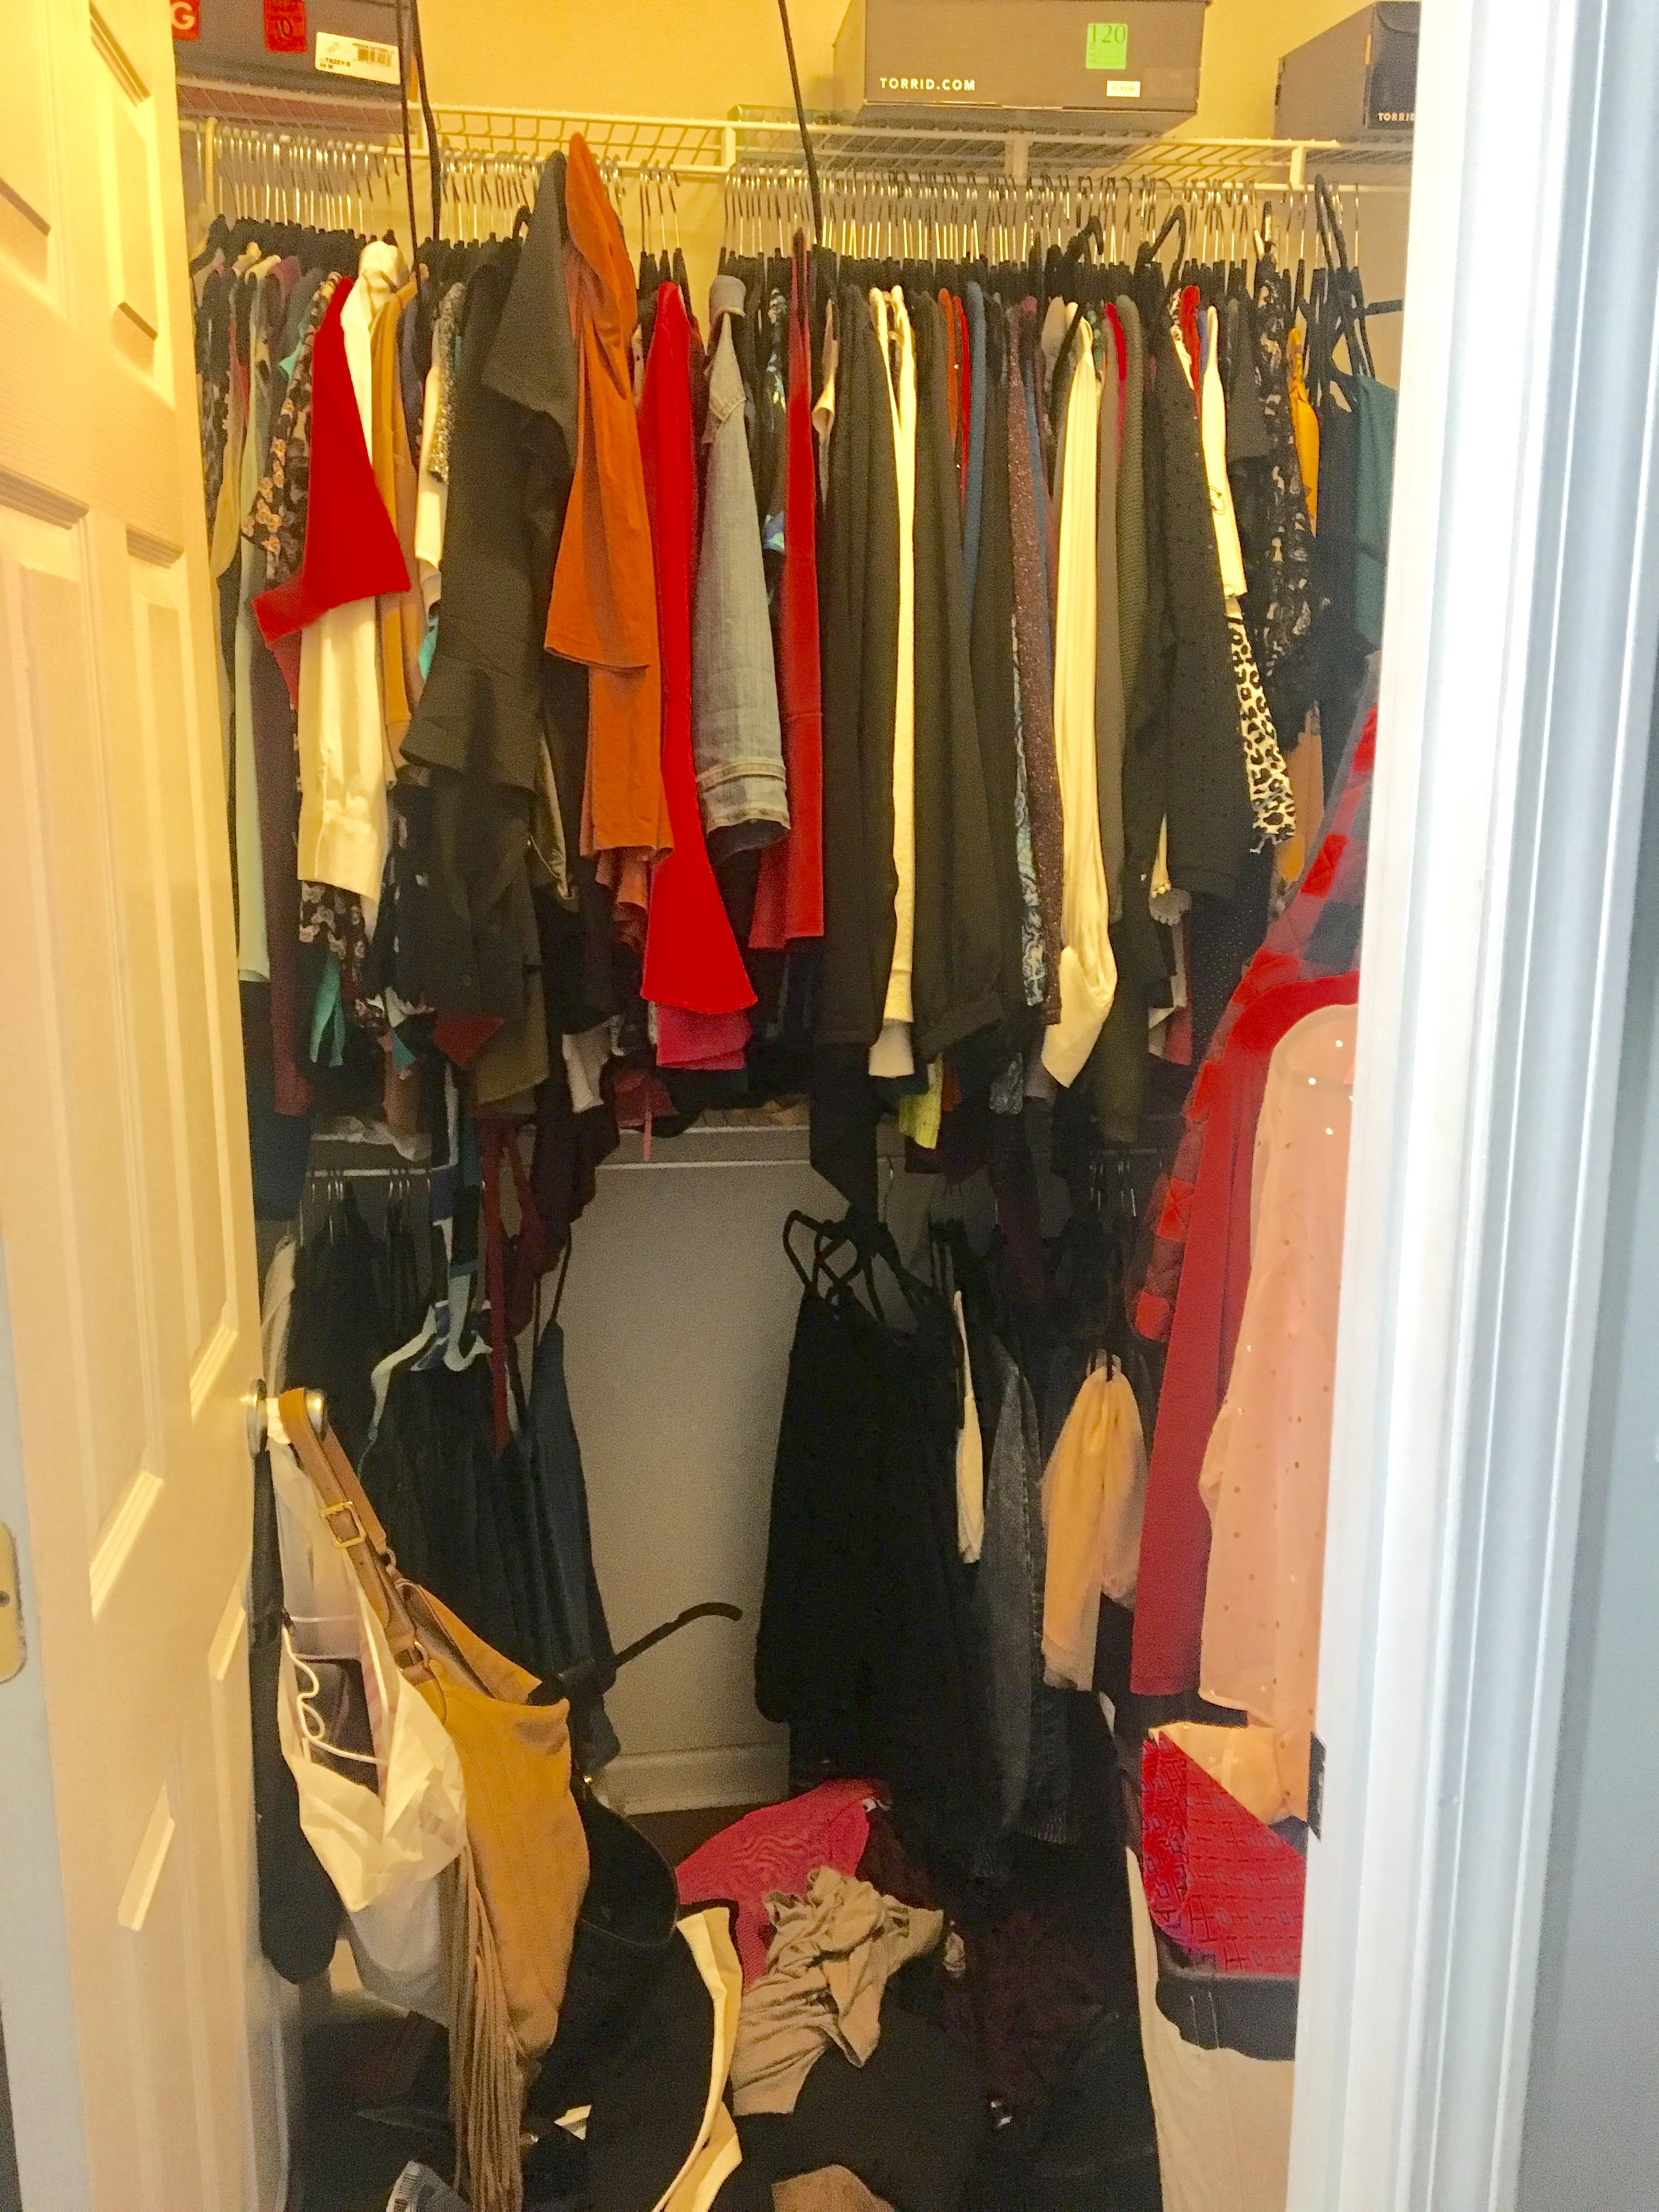 As you can see here, this is the master bedroom closet. My client clothes was growing and she needed more room and ORGANIZATION!